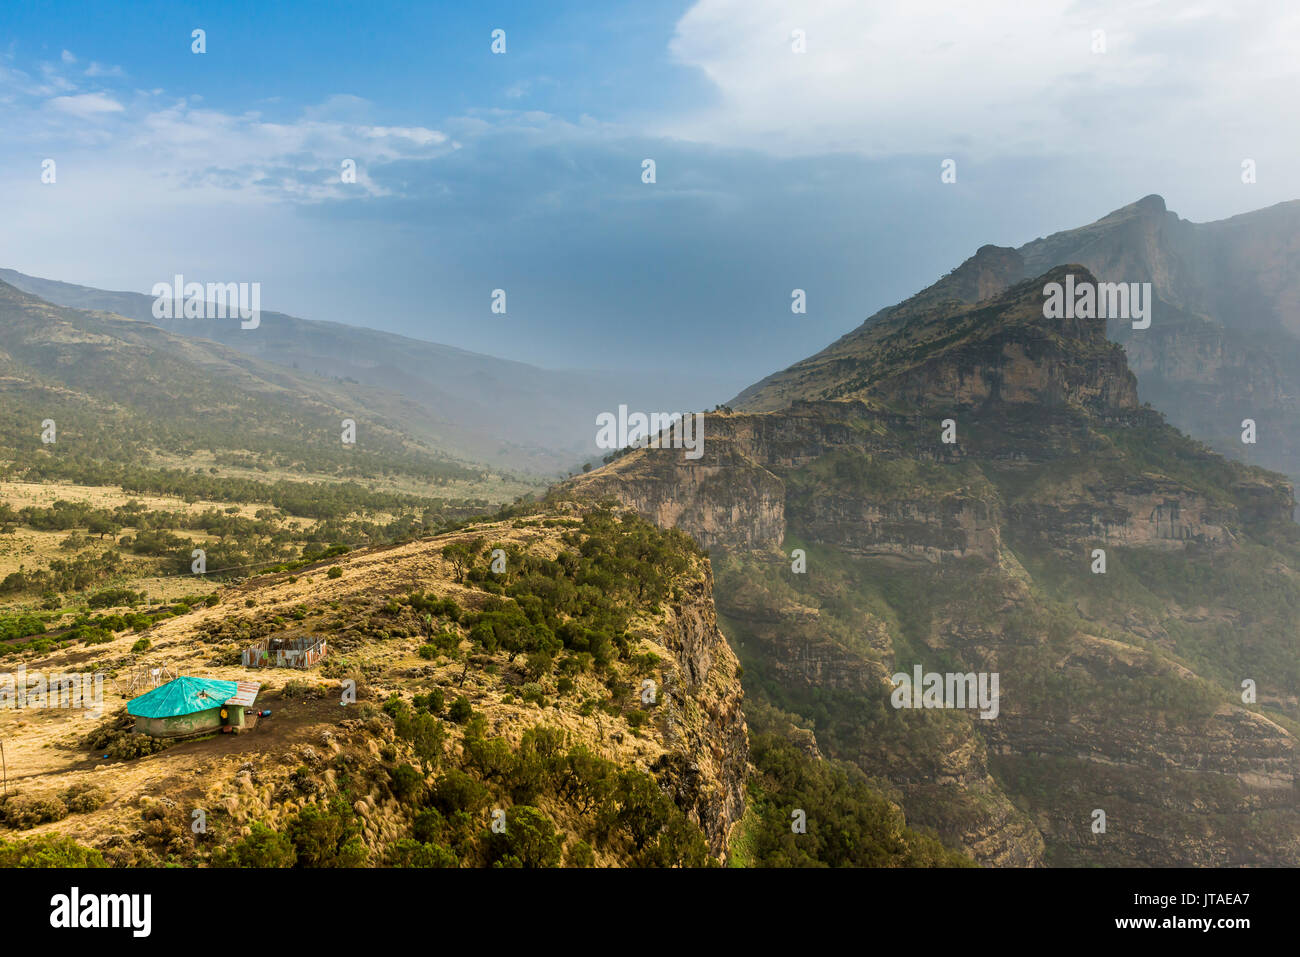 Community house on the edge of a cliff, Simien Mountains National Park, UNESCO World Heritage Site, Debarq, Ethiopia, Africa - Stock Image